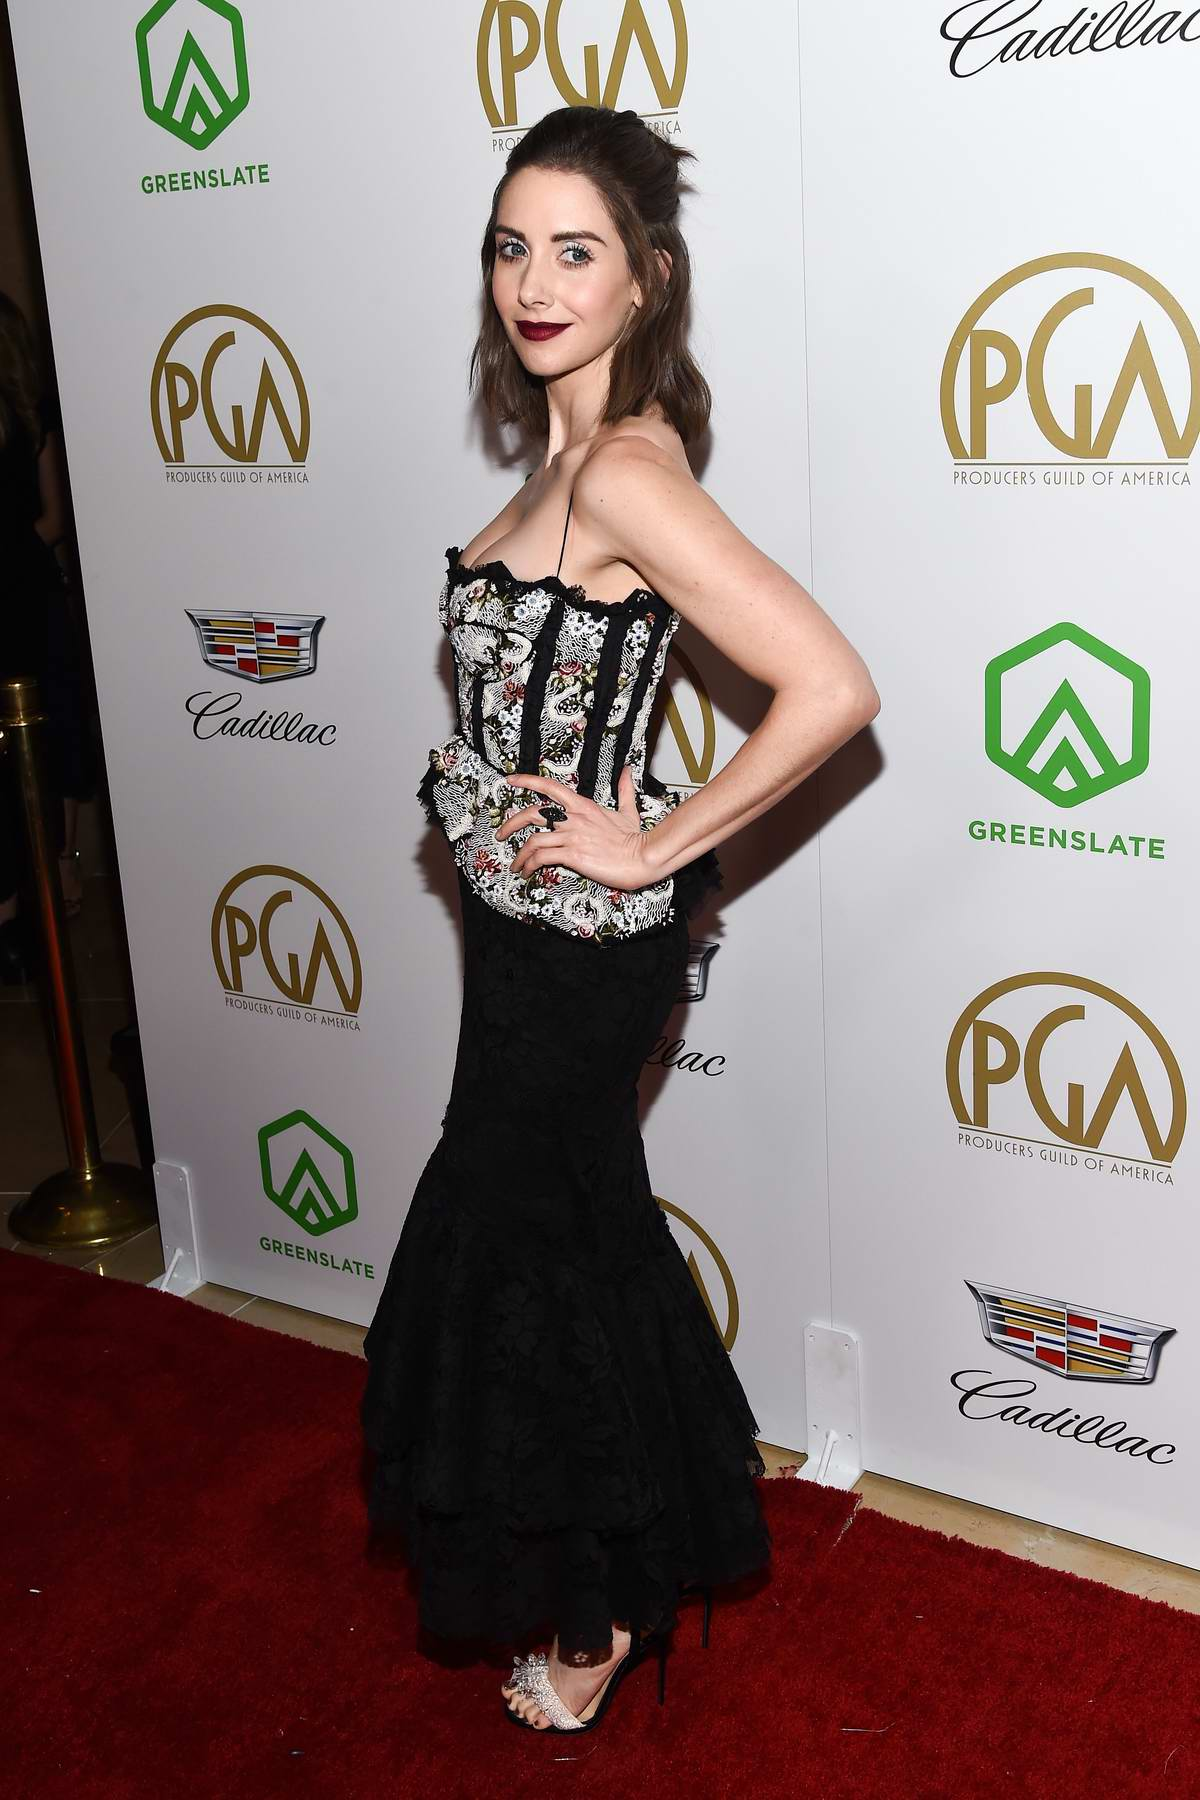 Alison Brie attends the 30th Annual Producers Guild Awards at The Beverly Hilton Hotel in Los Angeles